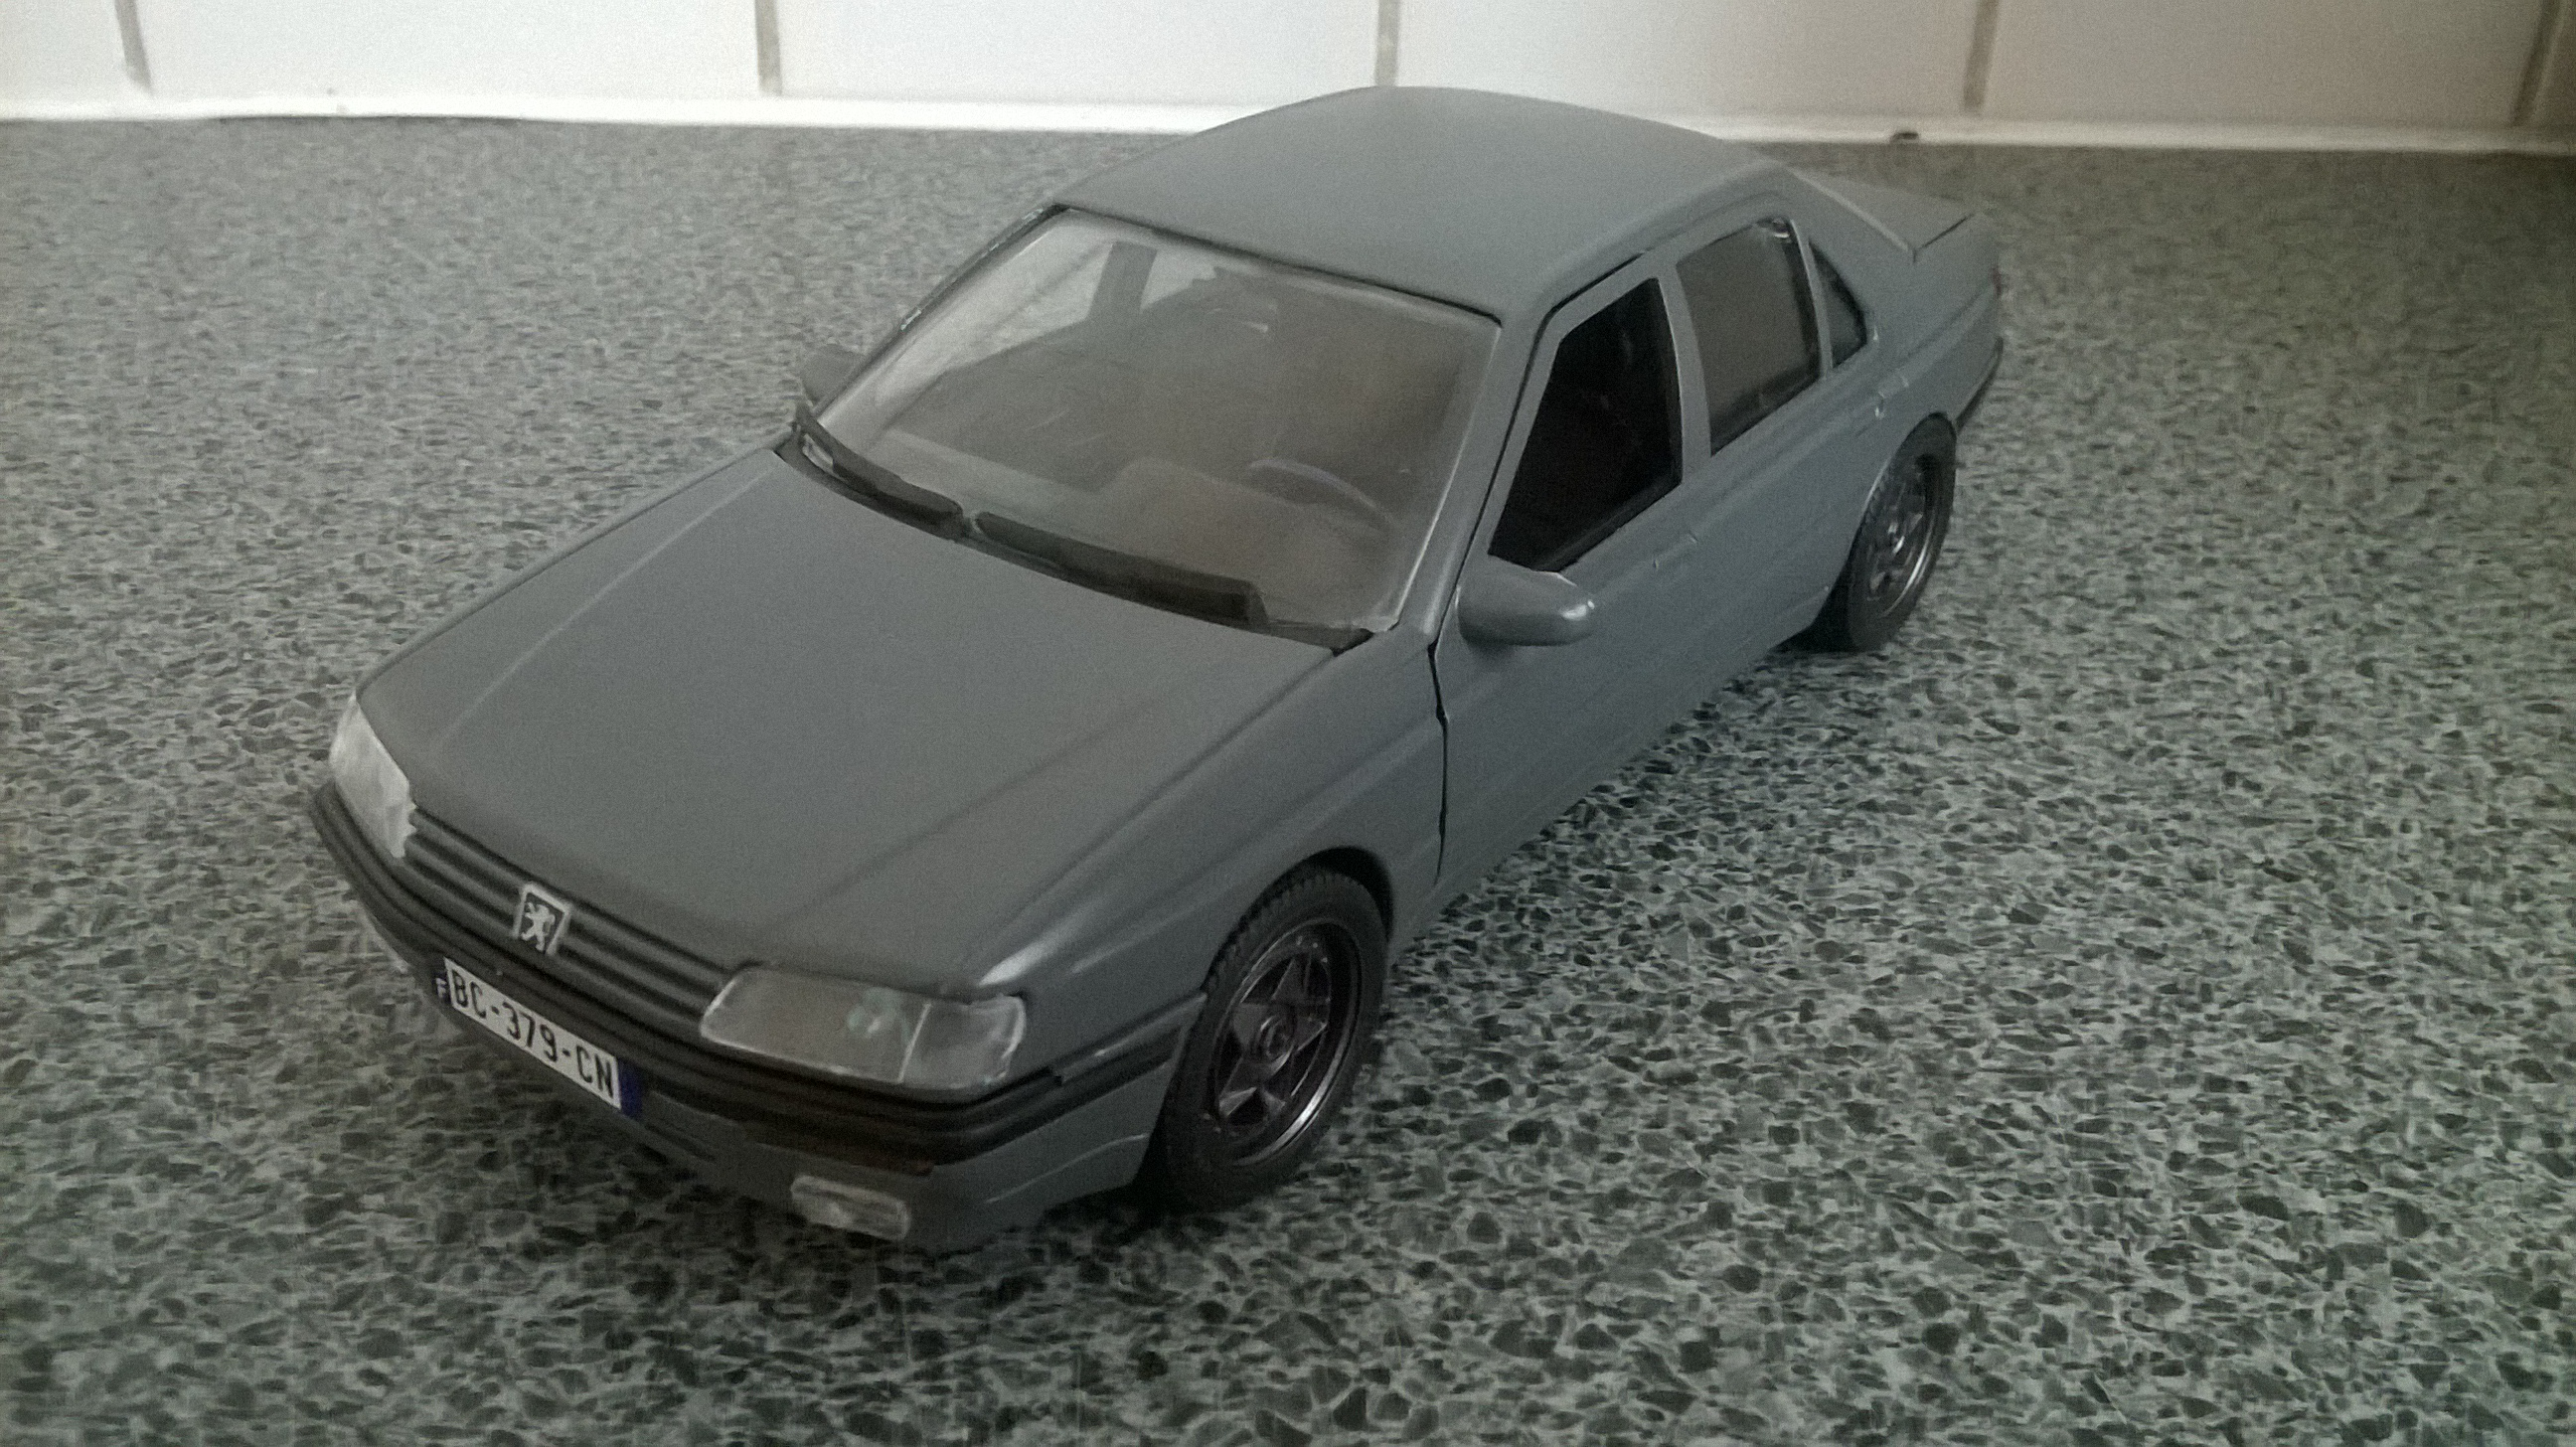 Peugeot 605 tuning 1/18 solido